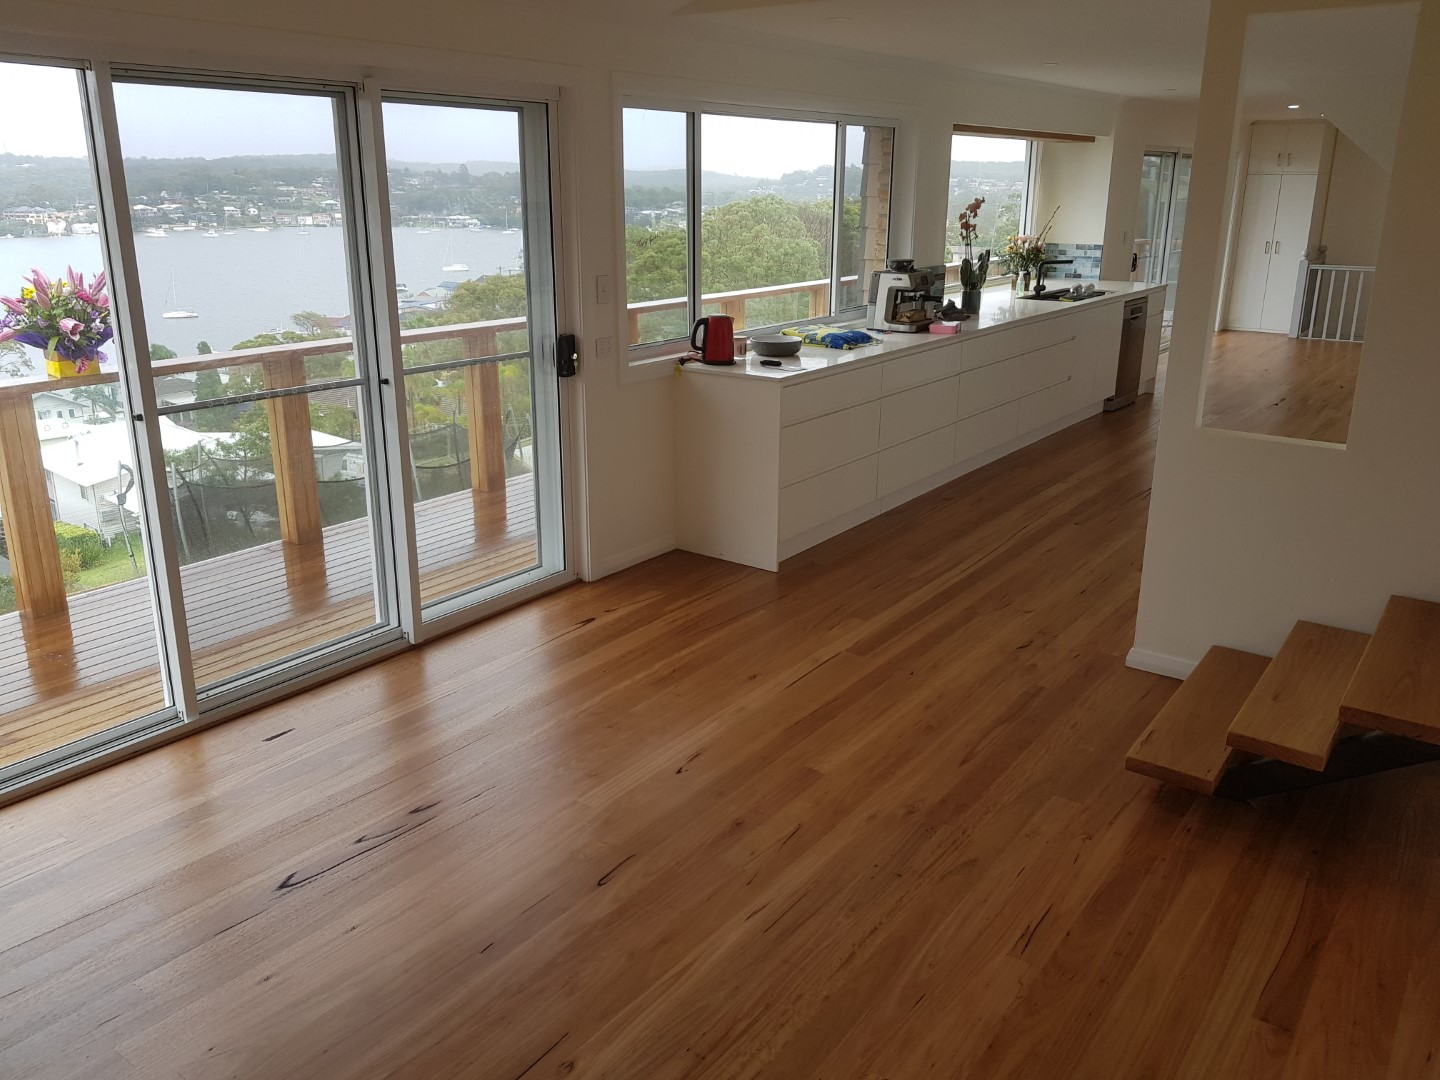 How to maintain and polish wooden floor?